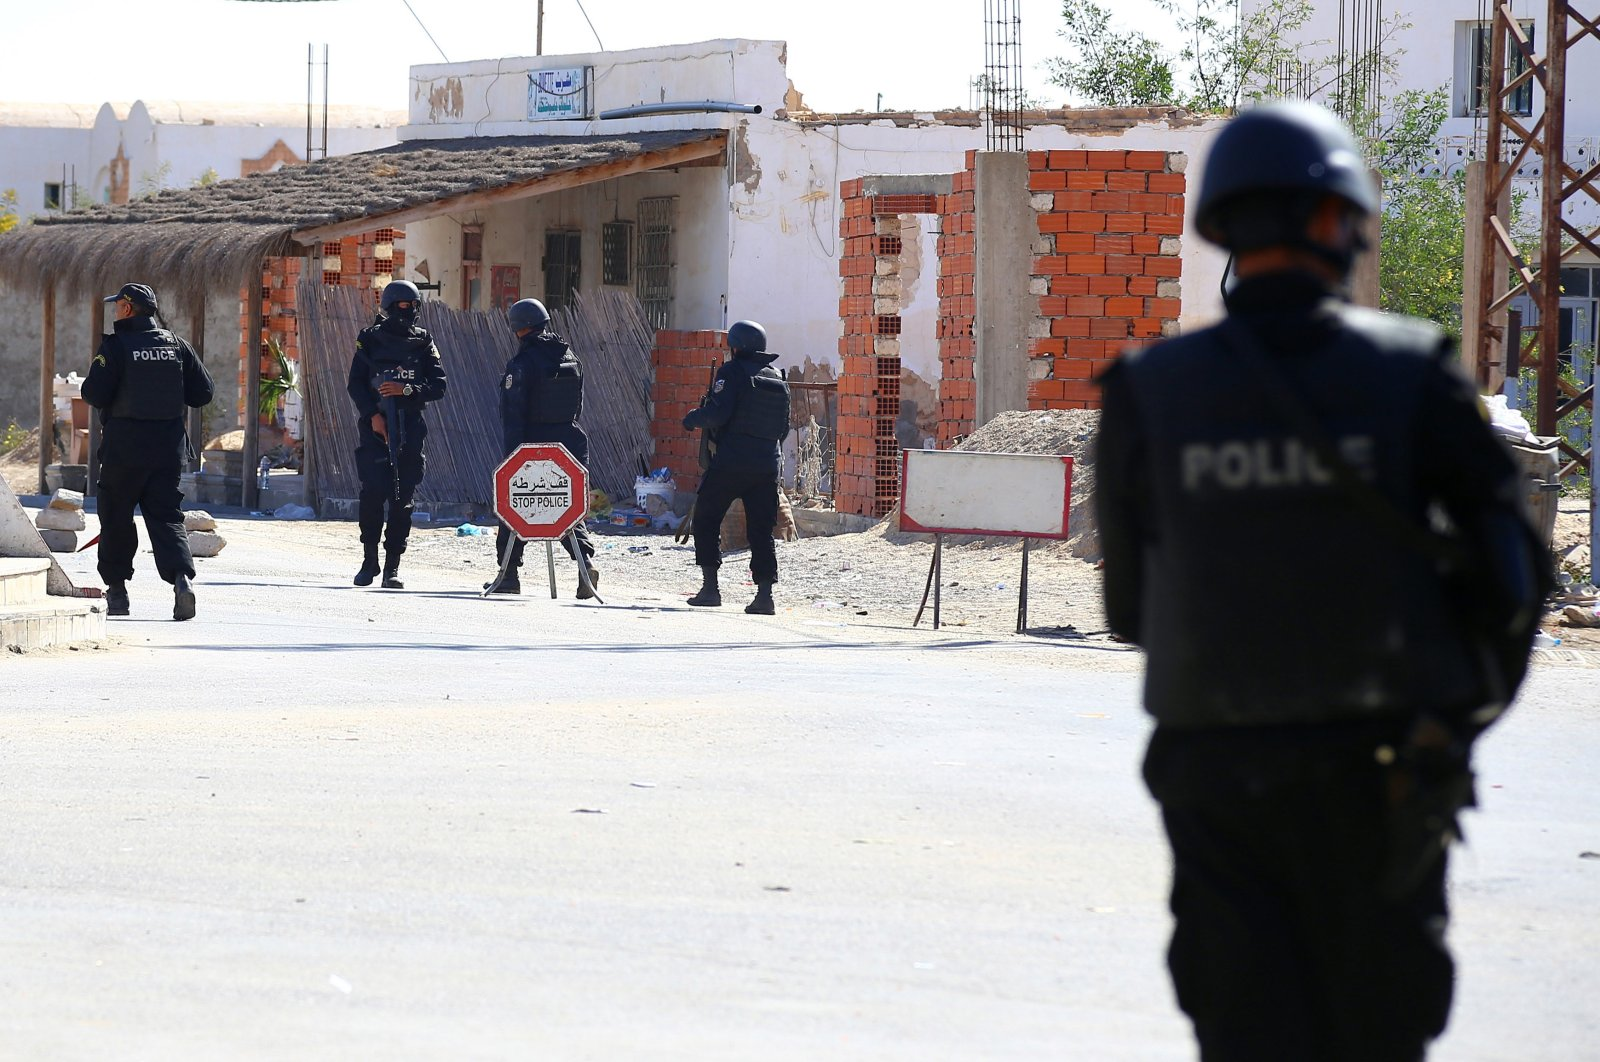 Tunisian police officers take positions as they search for attackers still at large in the outskirts of Ben Guerdane, southern Tunisia, near the border with Libya, March 8, 2016. (AP File Photo)